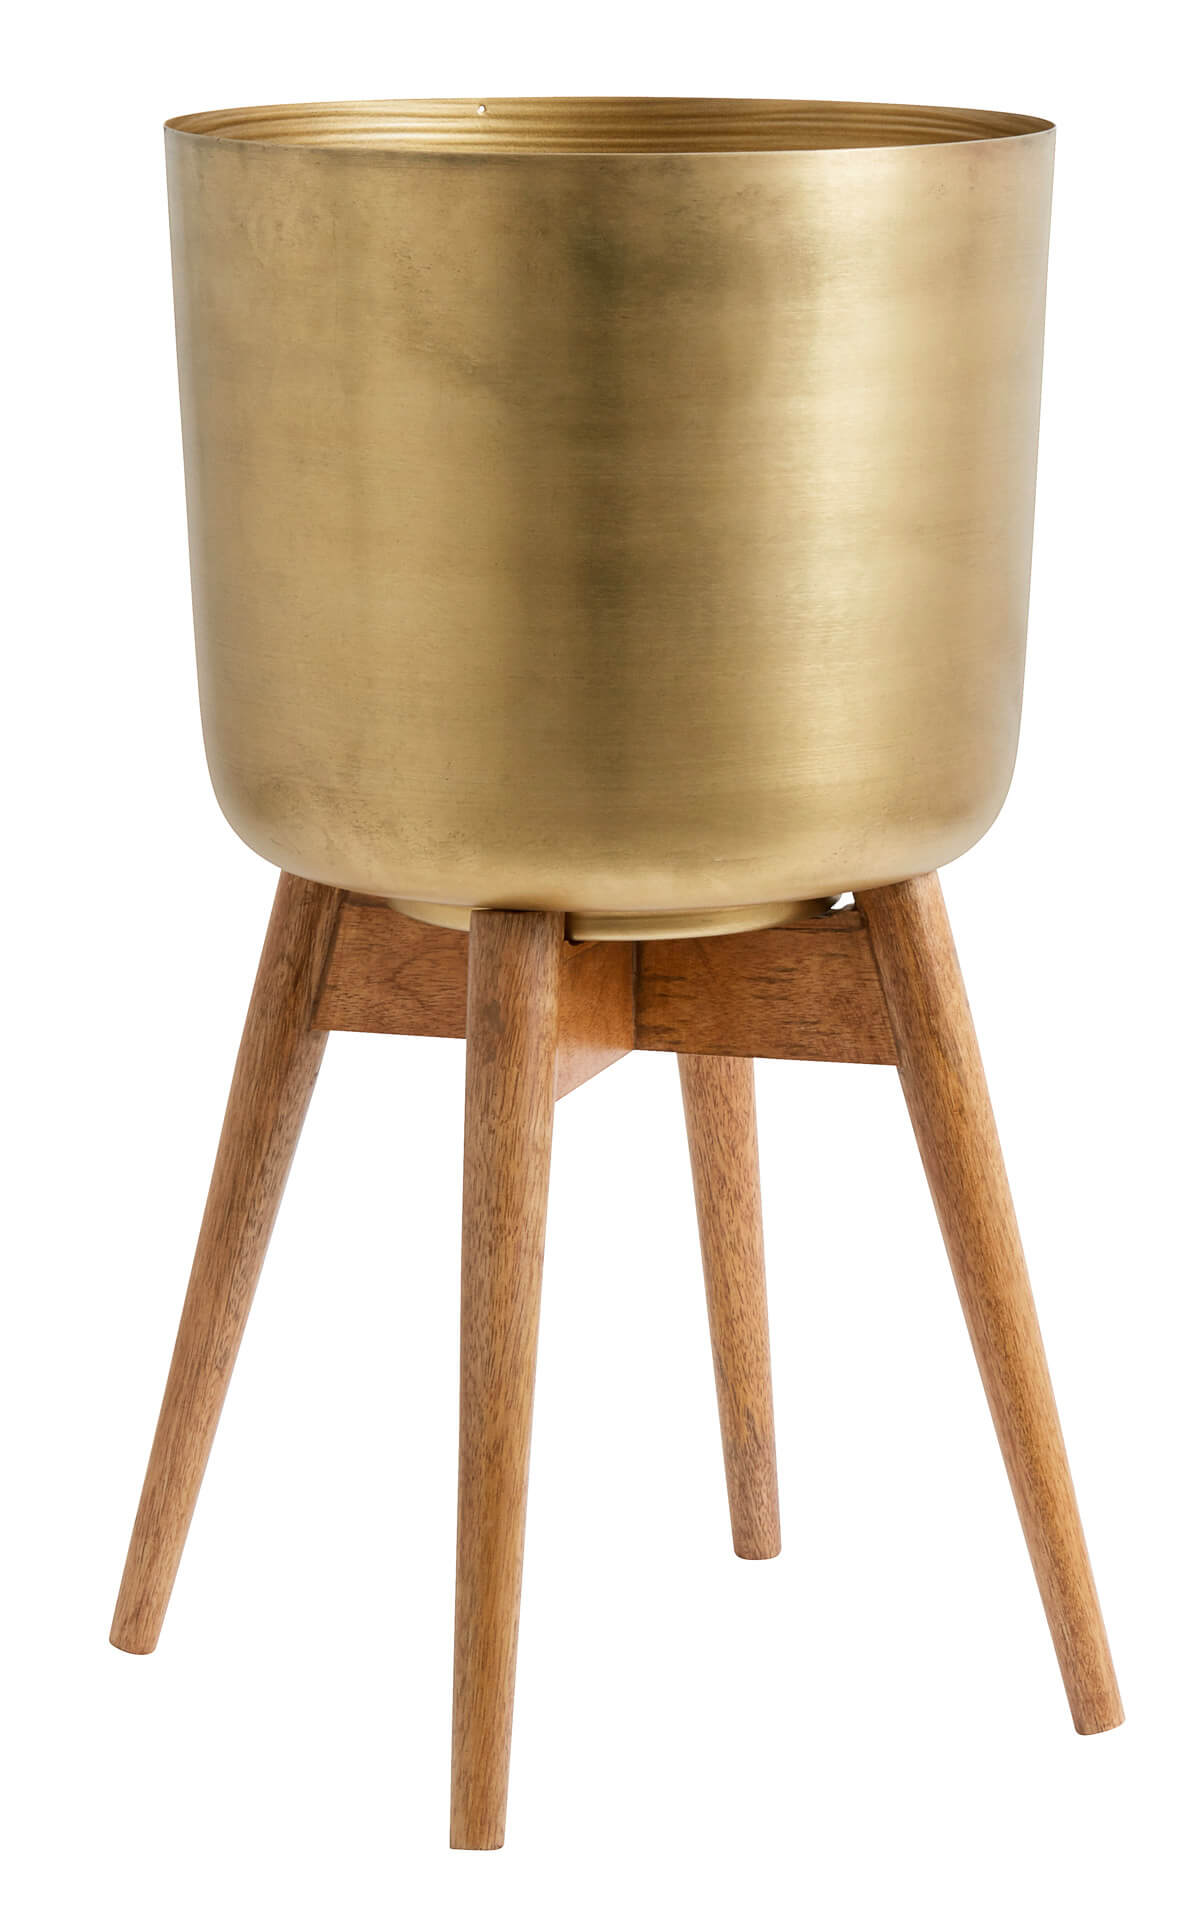 Nordal Planter On Stand Large Brass/Wood